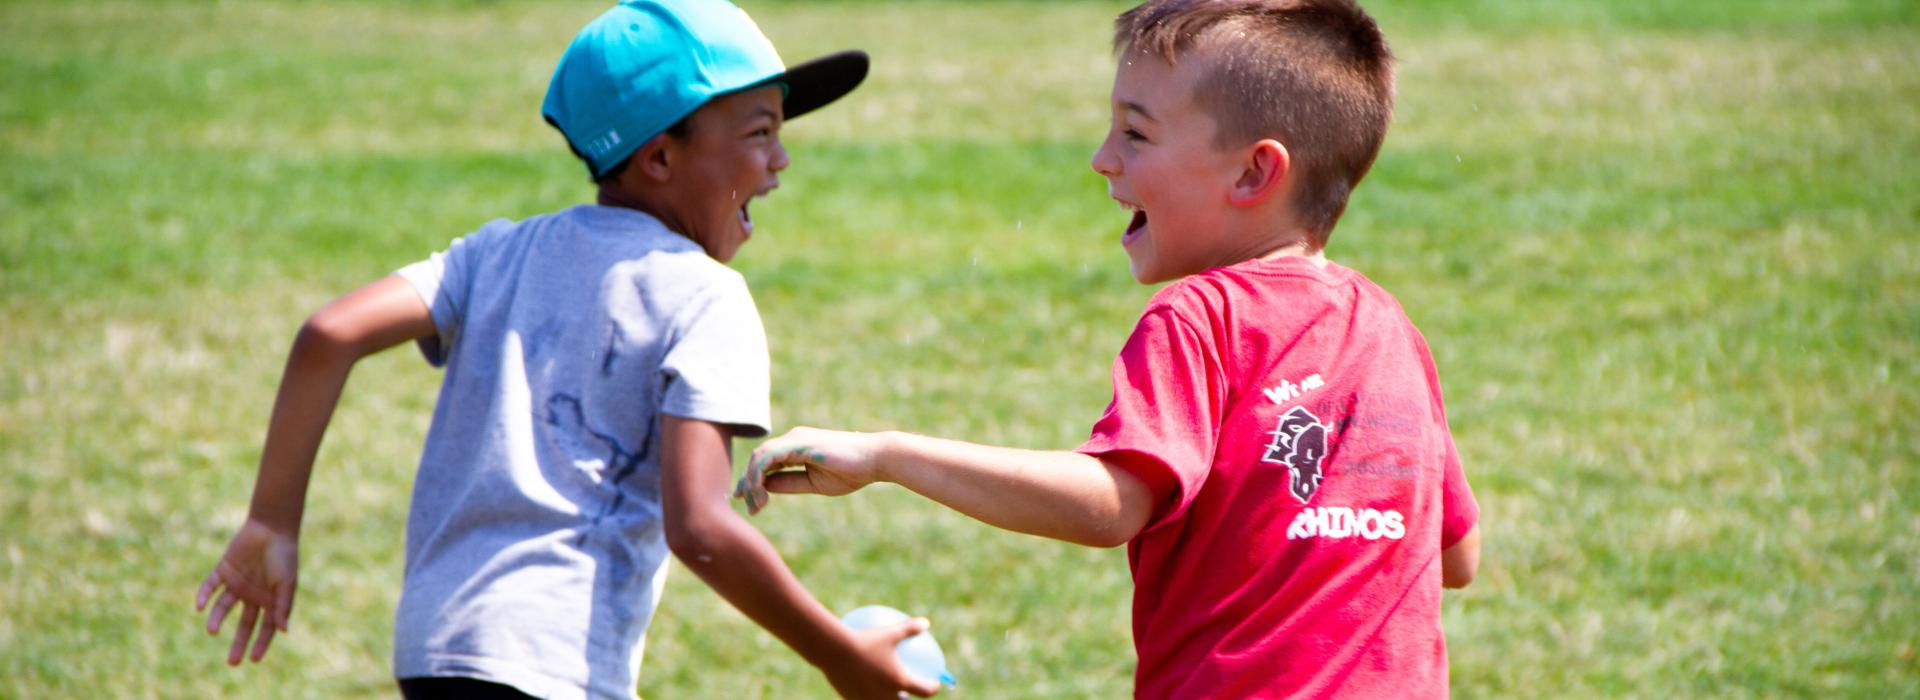 Water Balloon Fight At Summer Day Camp